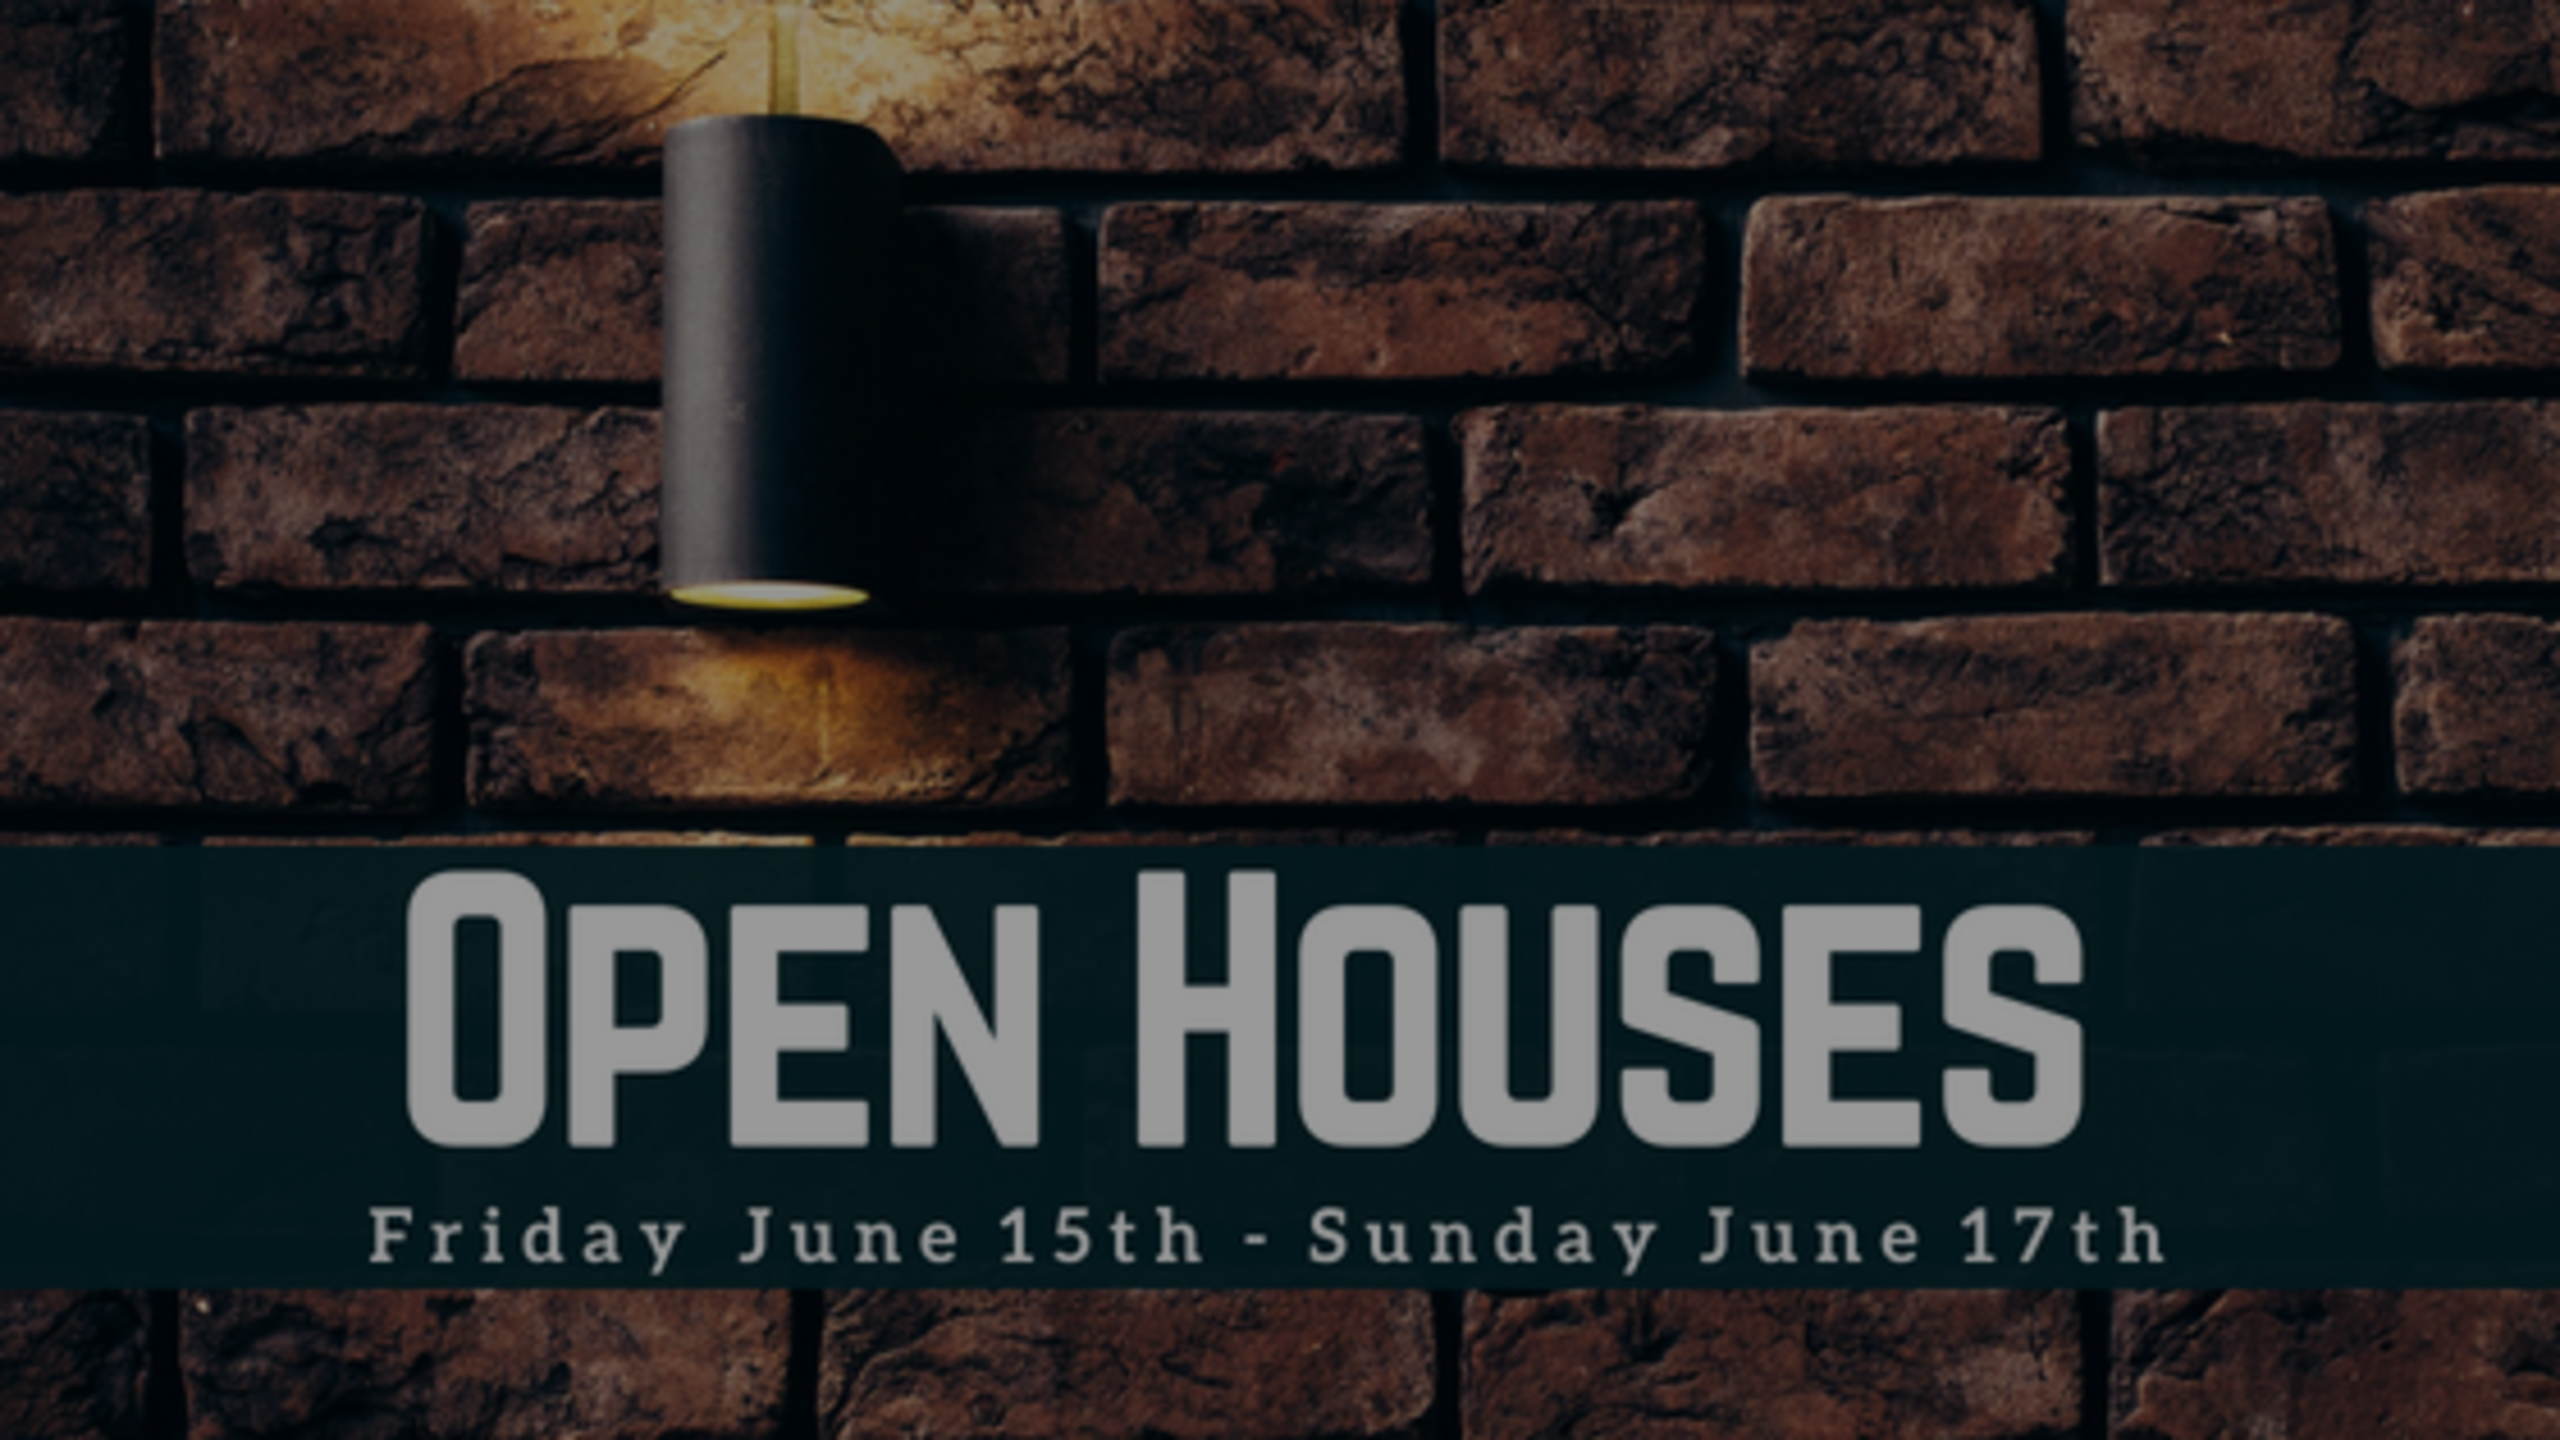 Our Open Houses: Weekend of 6/15 – 6/17